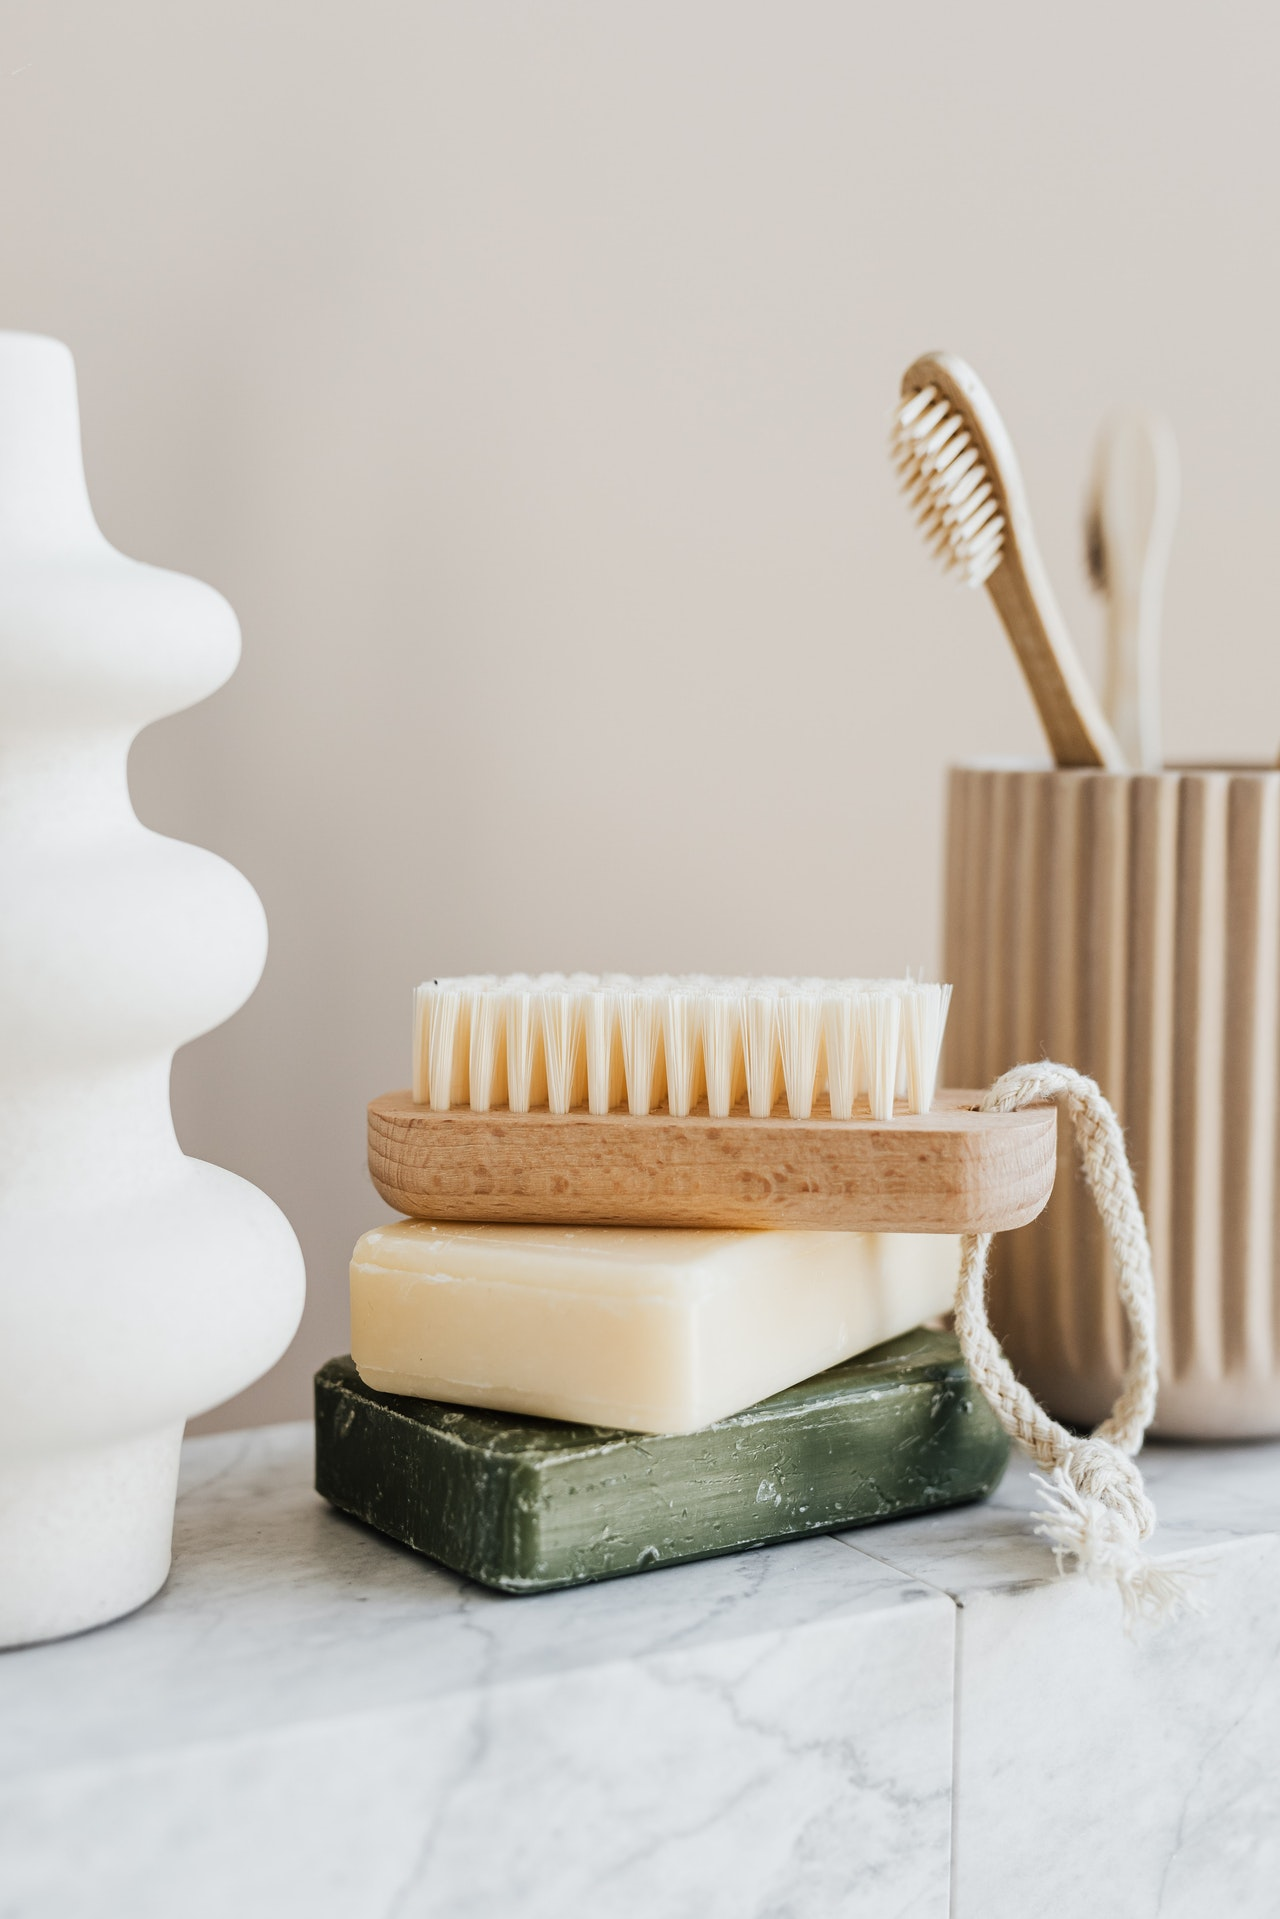 How Often Should I Replace My Toothbrush?